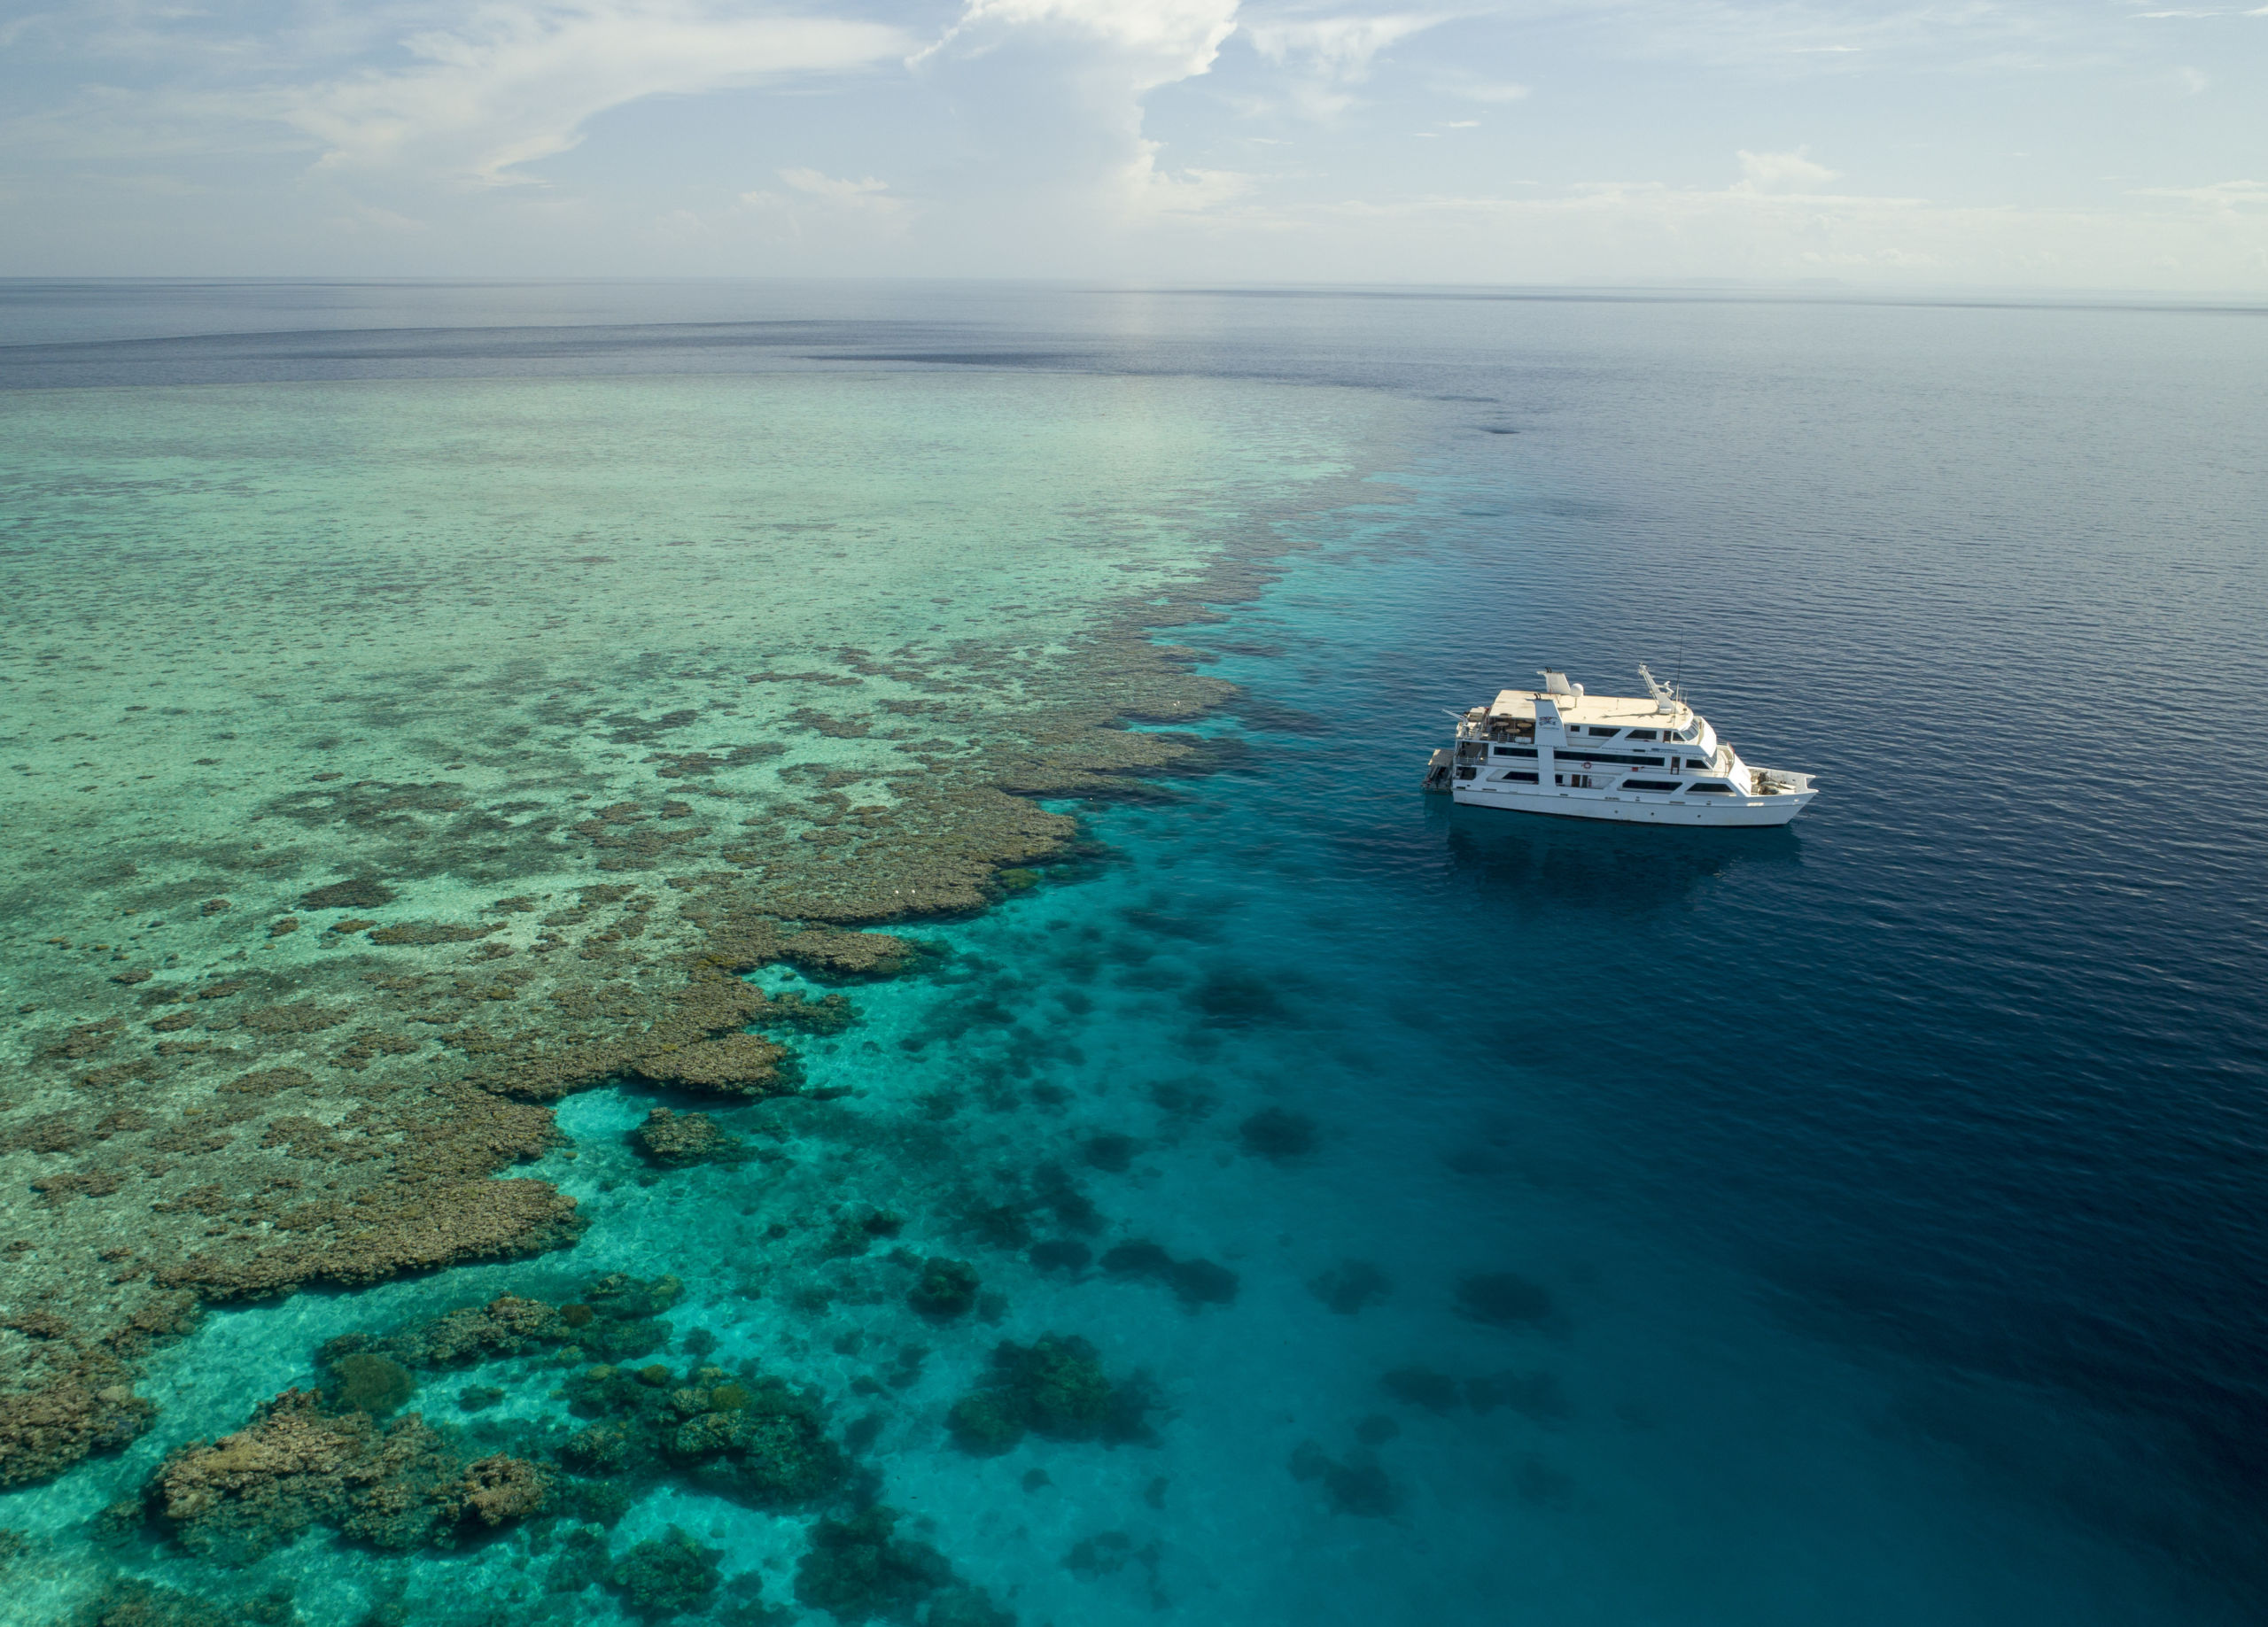 Cairns and the Great Barrier Reef